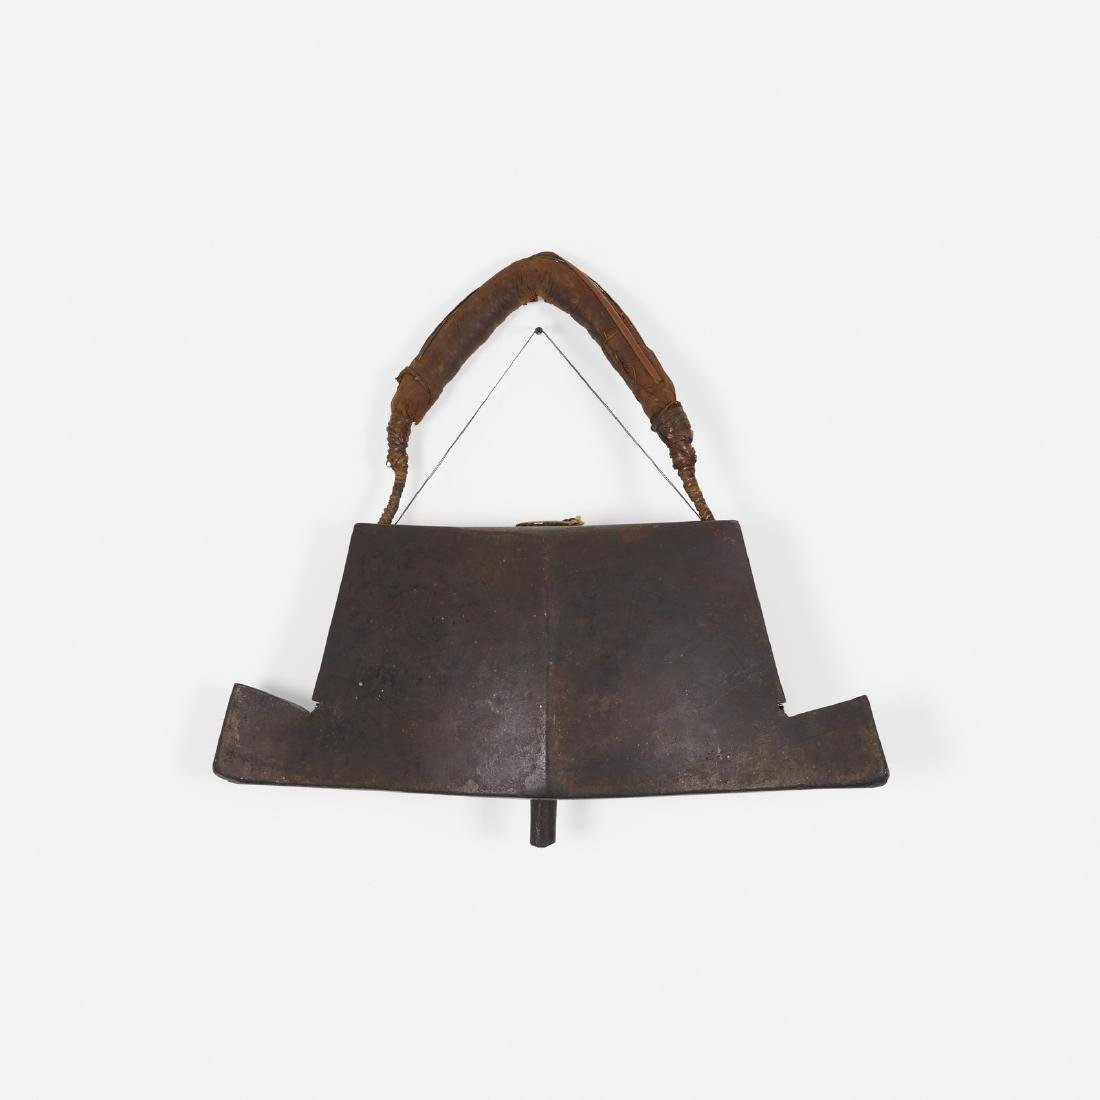 Indonesian, cow bell